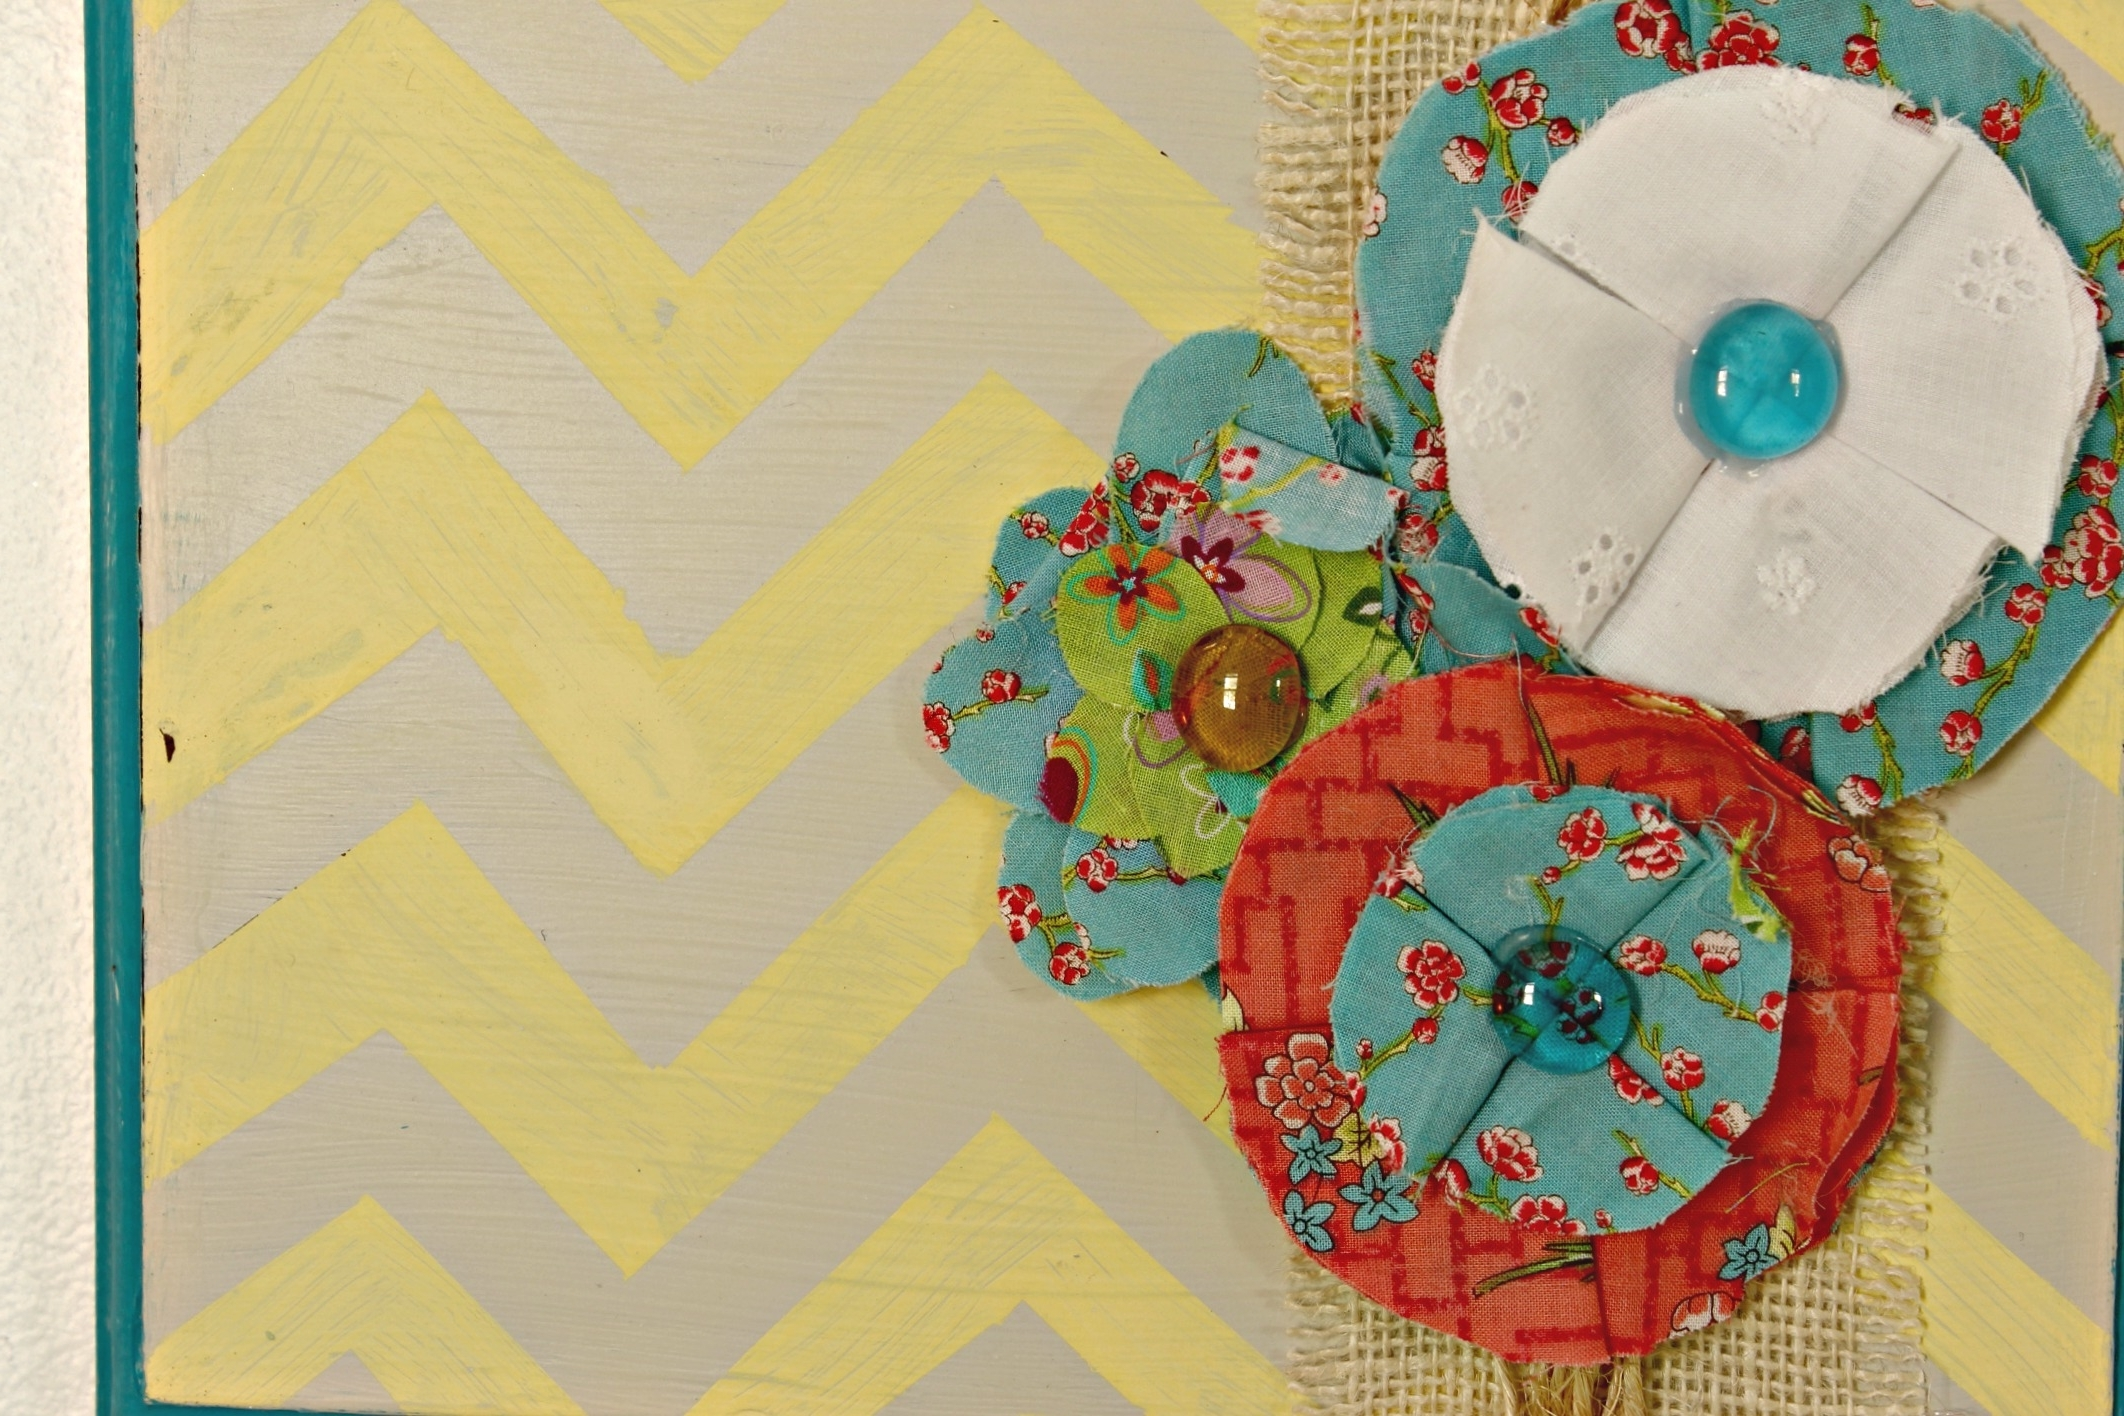 Diy Fabric Flower Wall Art Intended For Most Up To Date Quick & Easy Diy Wall Art (Gallery 13 of 15)